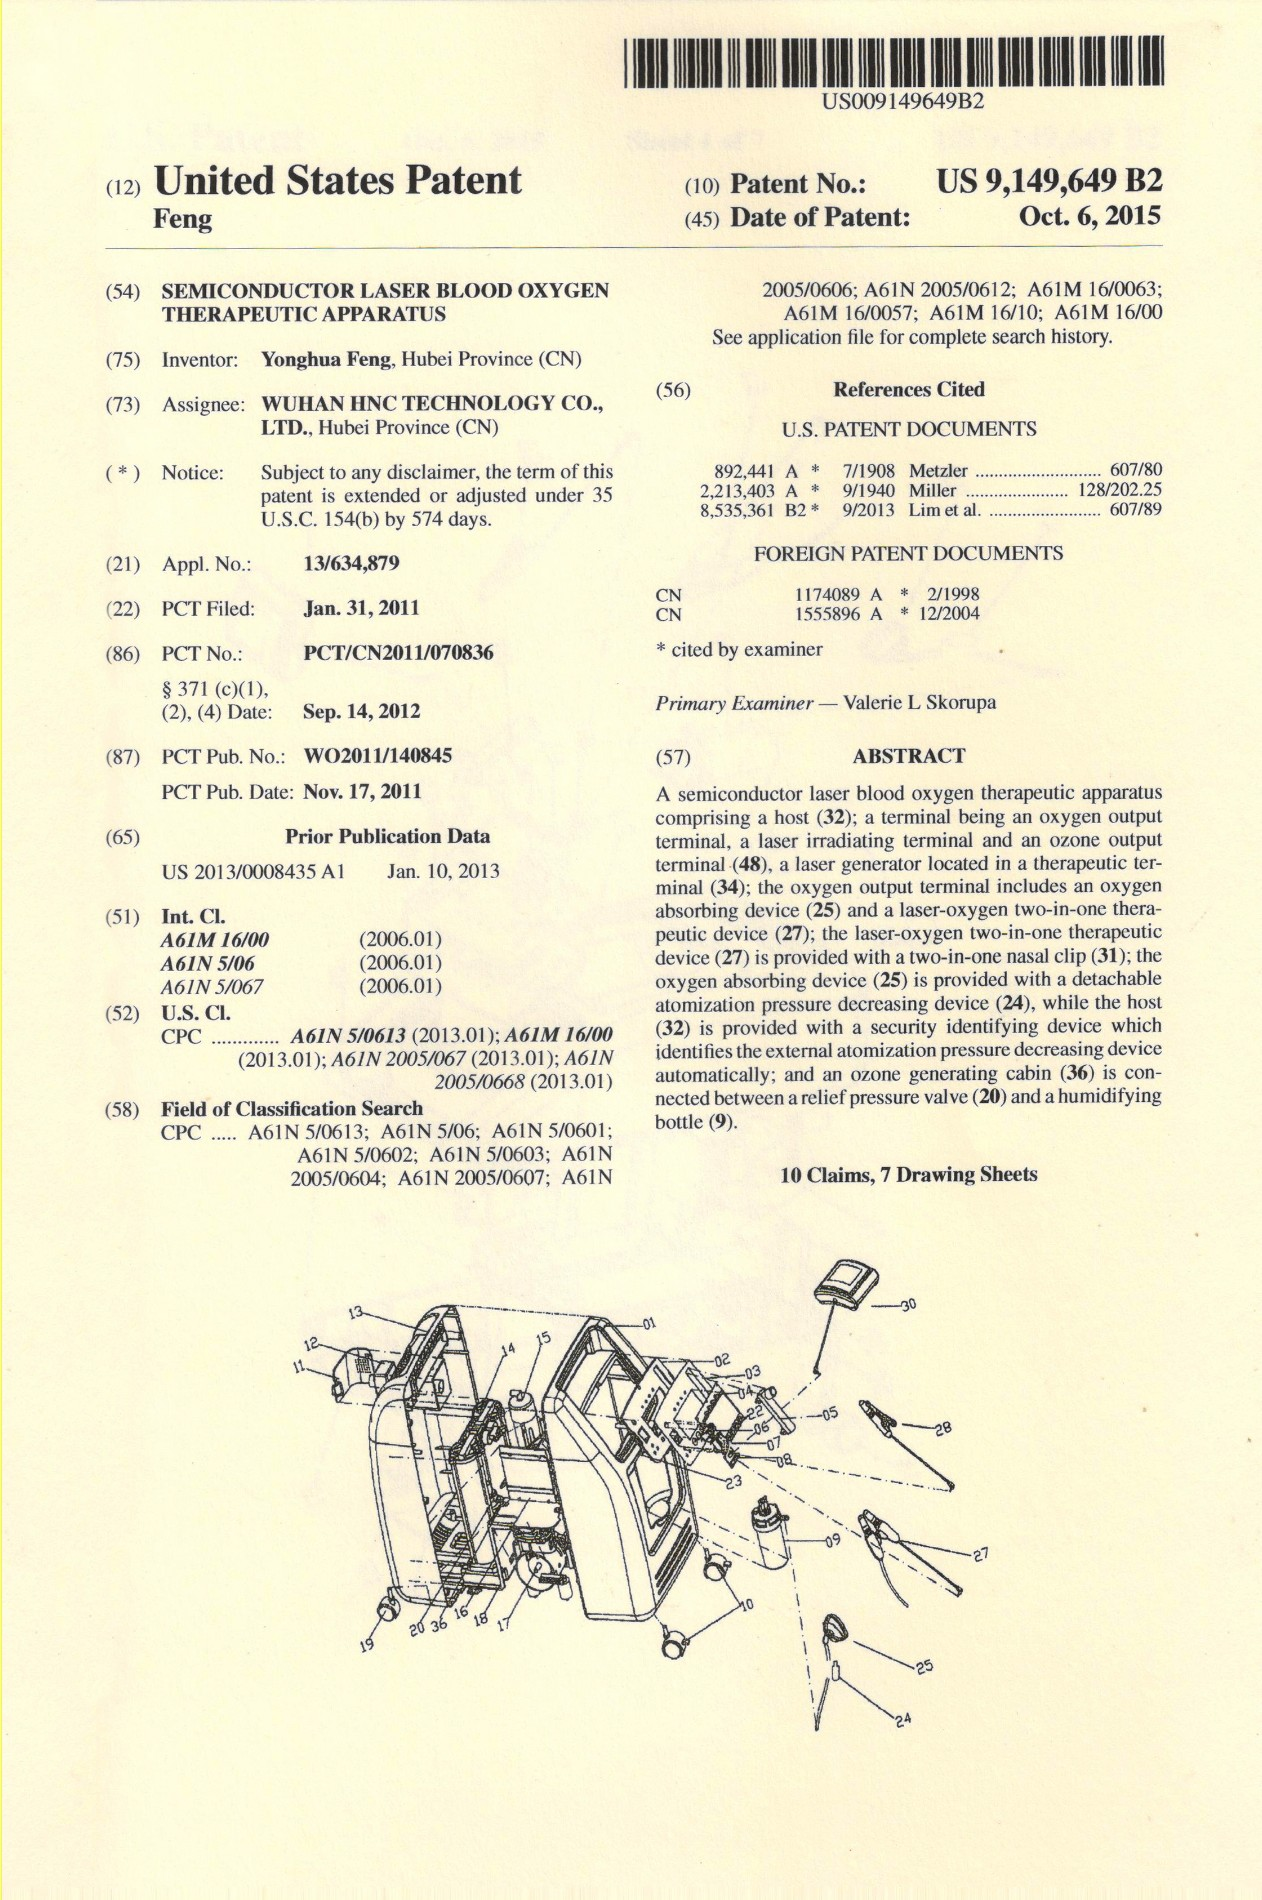 Onychomycosis treatment instrument patent